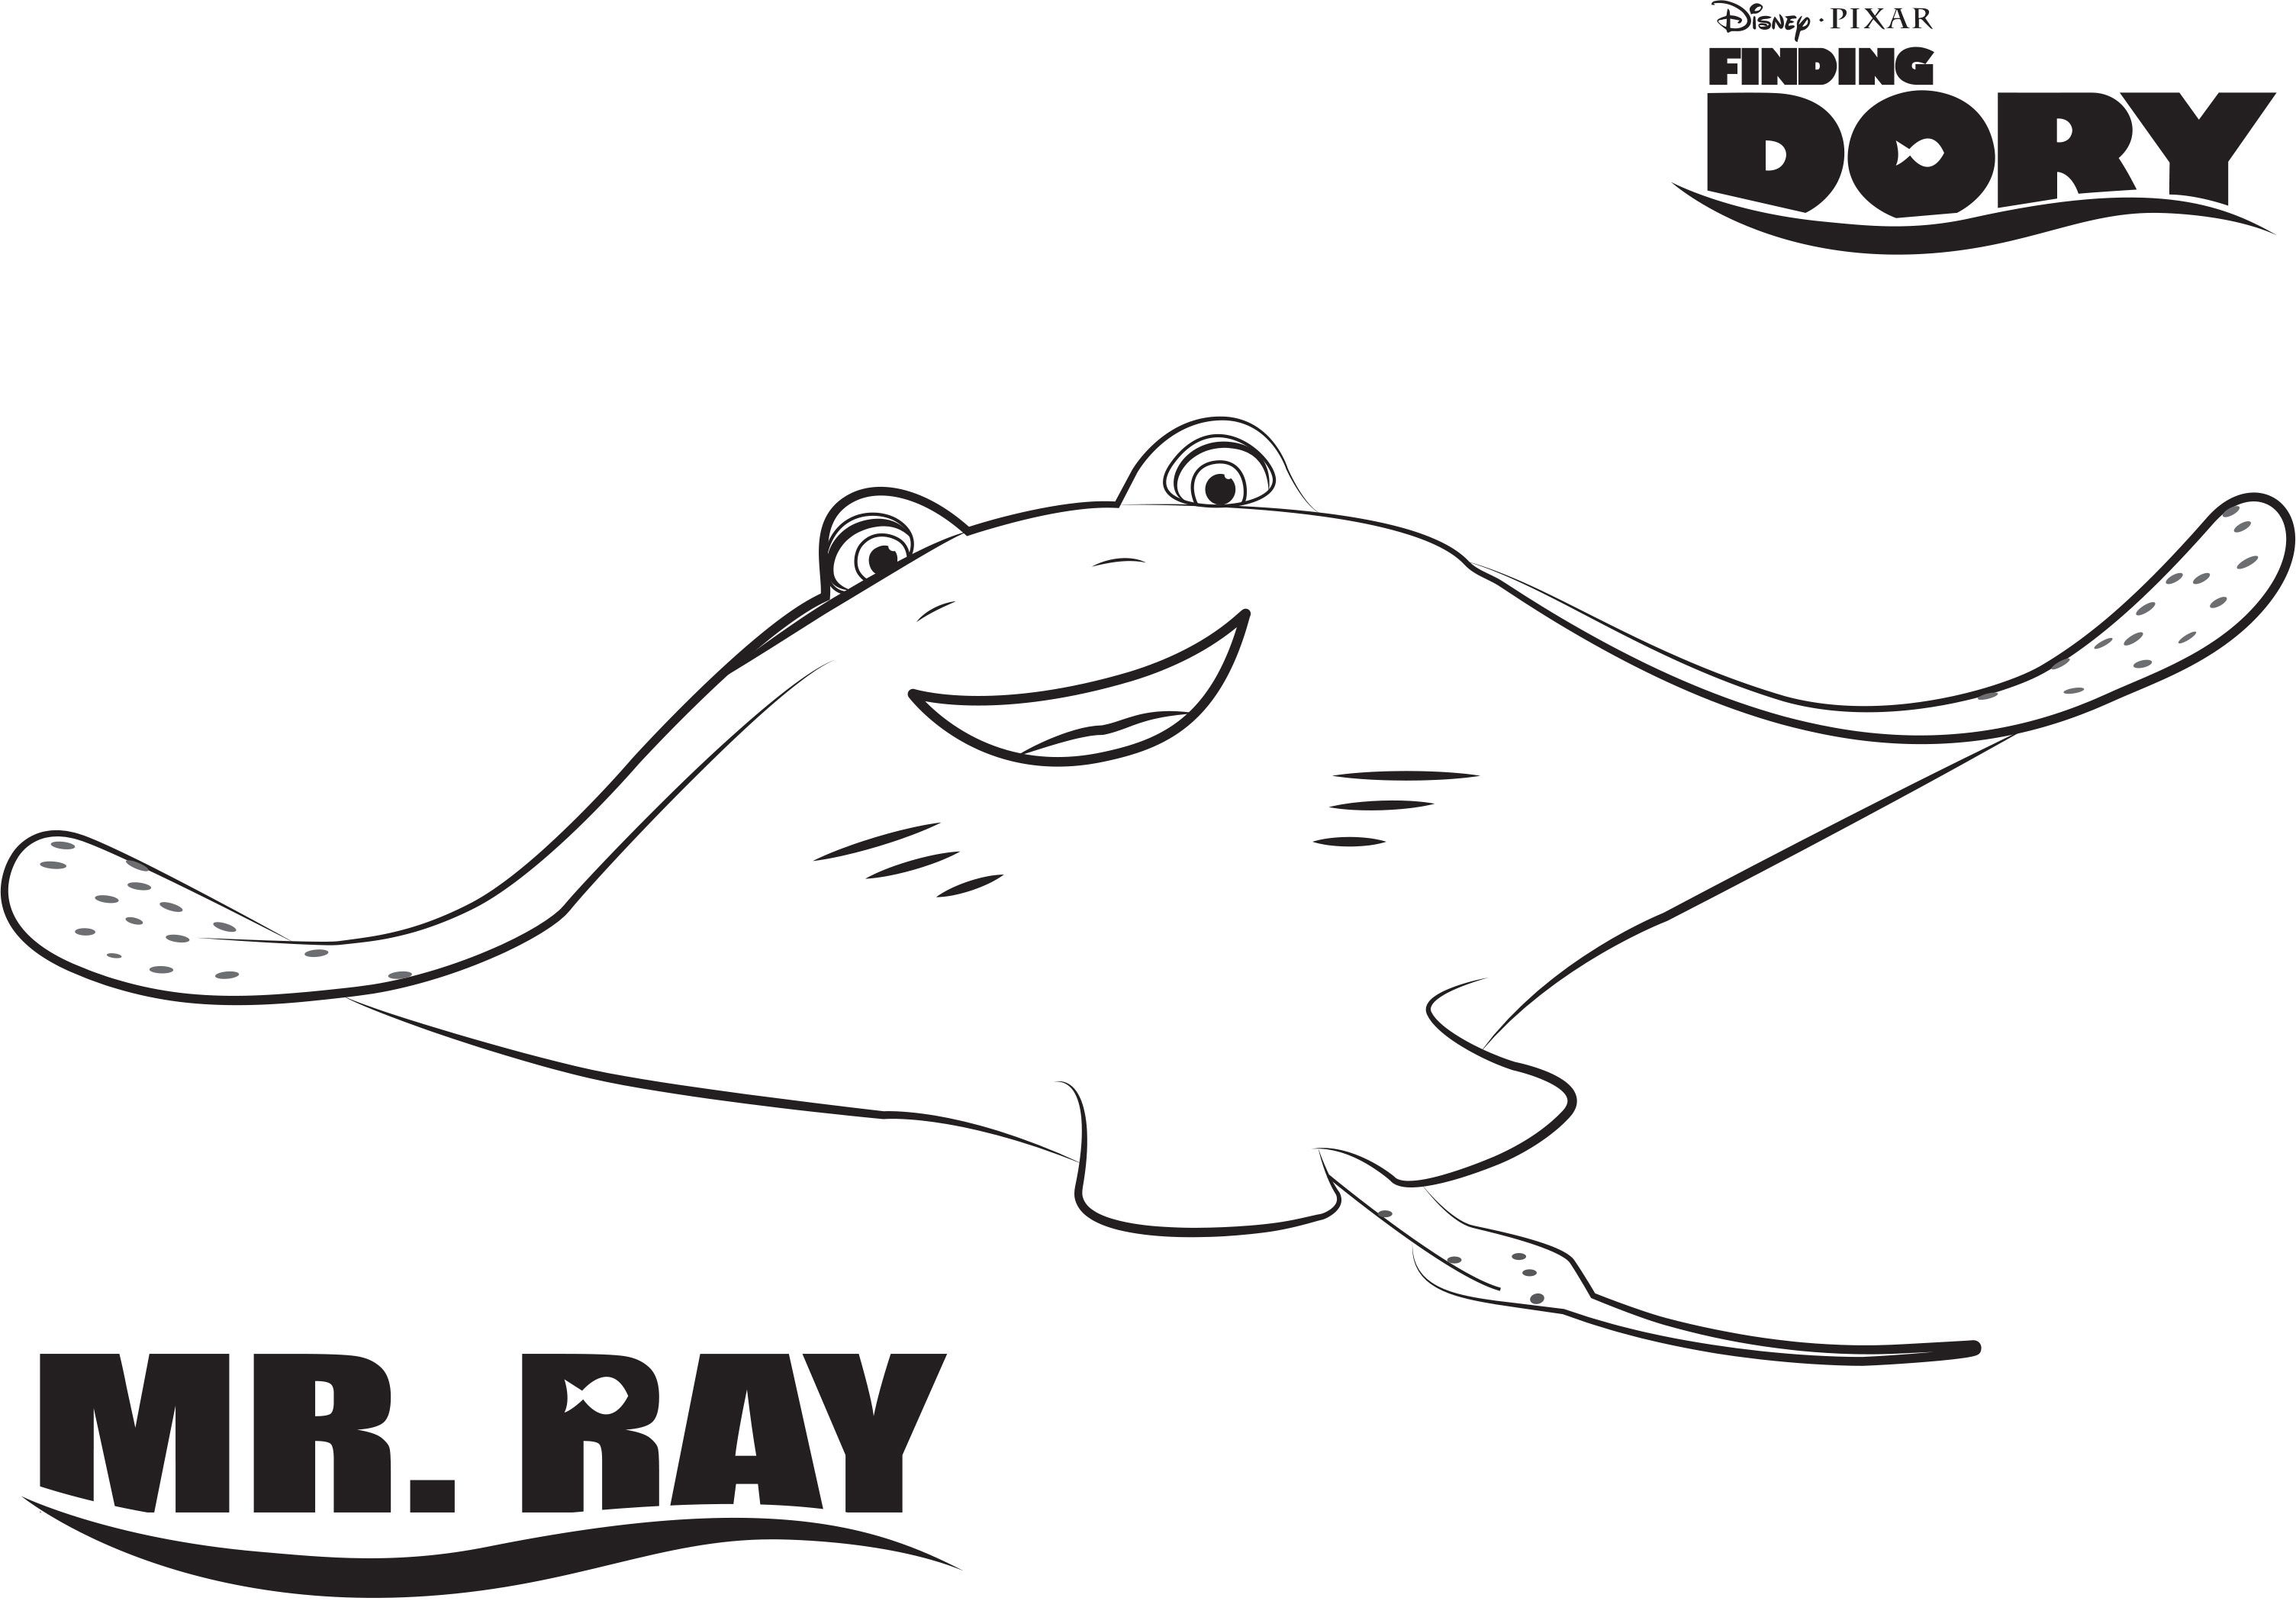 dory finding dory printable coloring page - Stingray Coloring Pages Printable